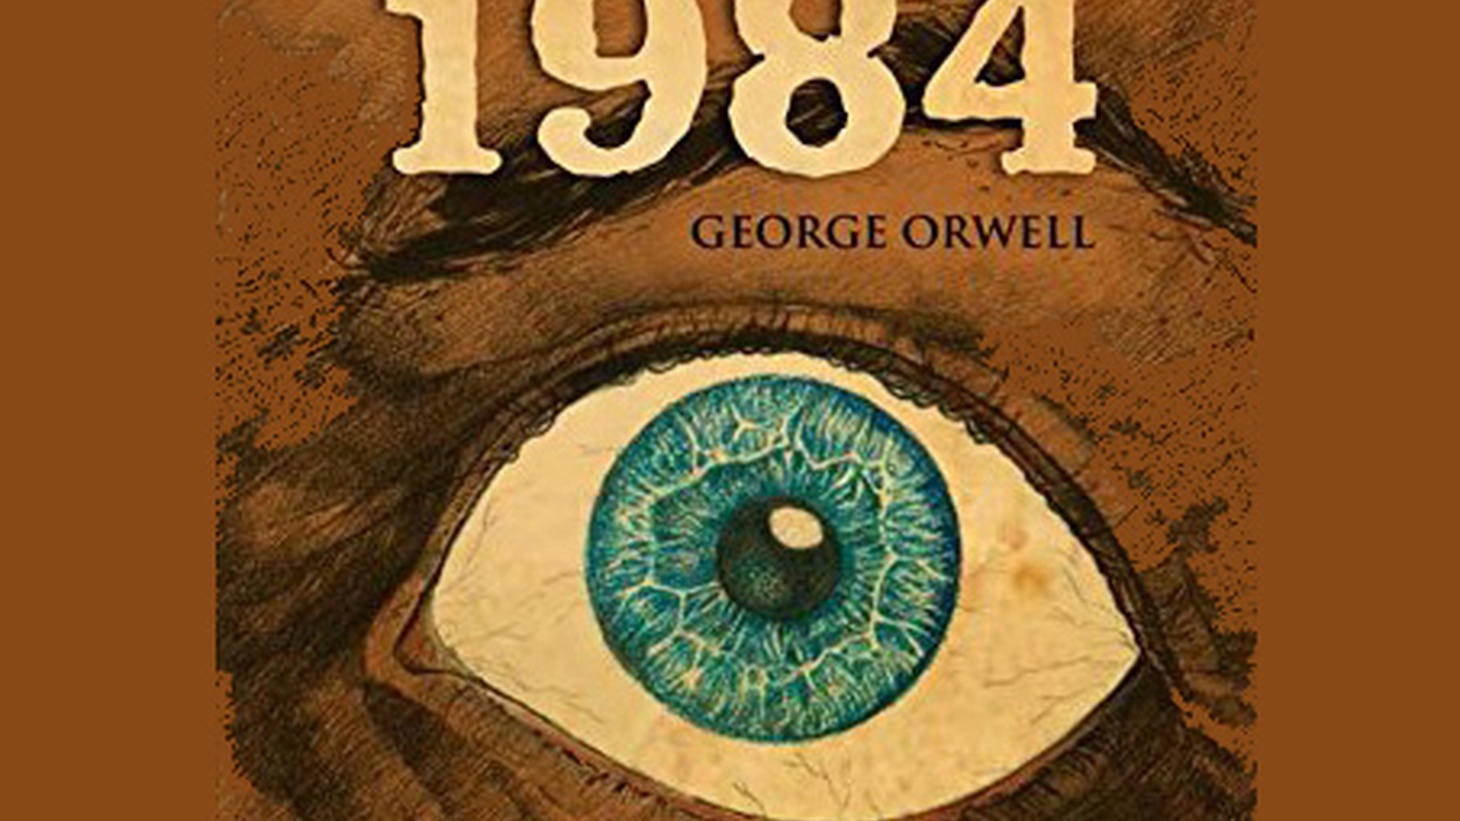 Some people are drawing parallels between President Donald Trump's rhetoric and the totalitarian government in the novel  1984 . The book recently climbed up Amazon's best seller list.